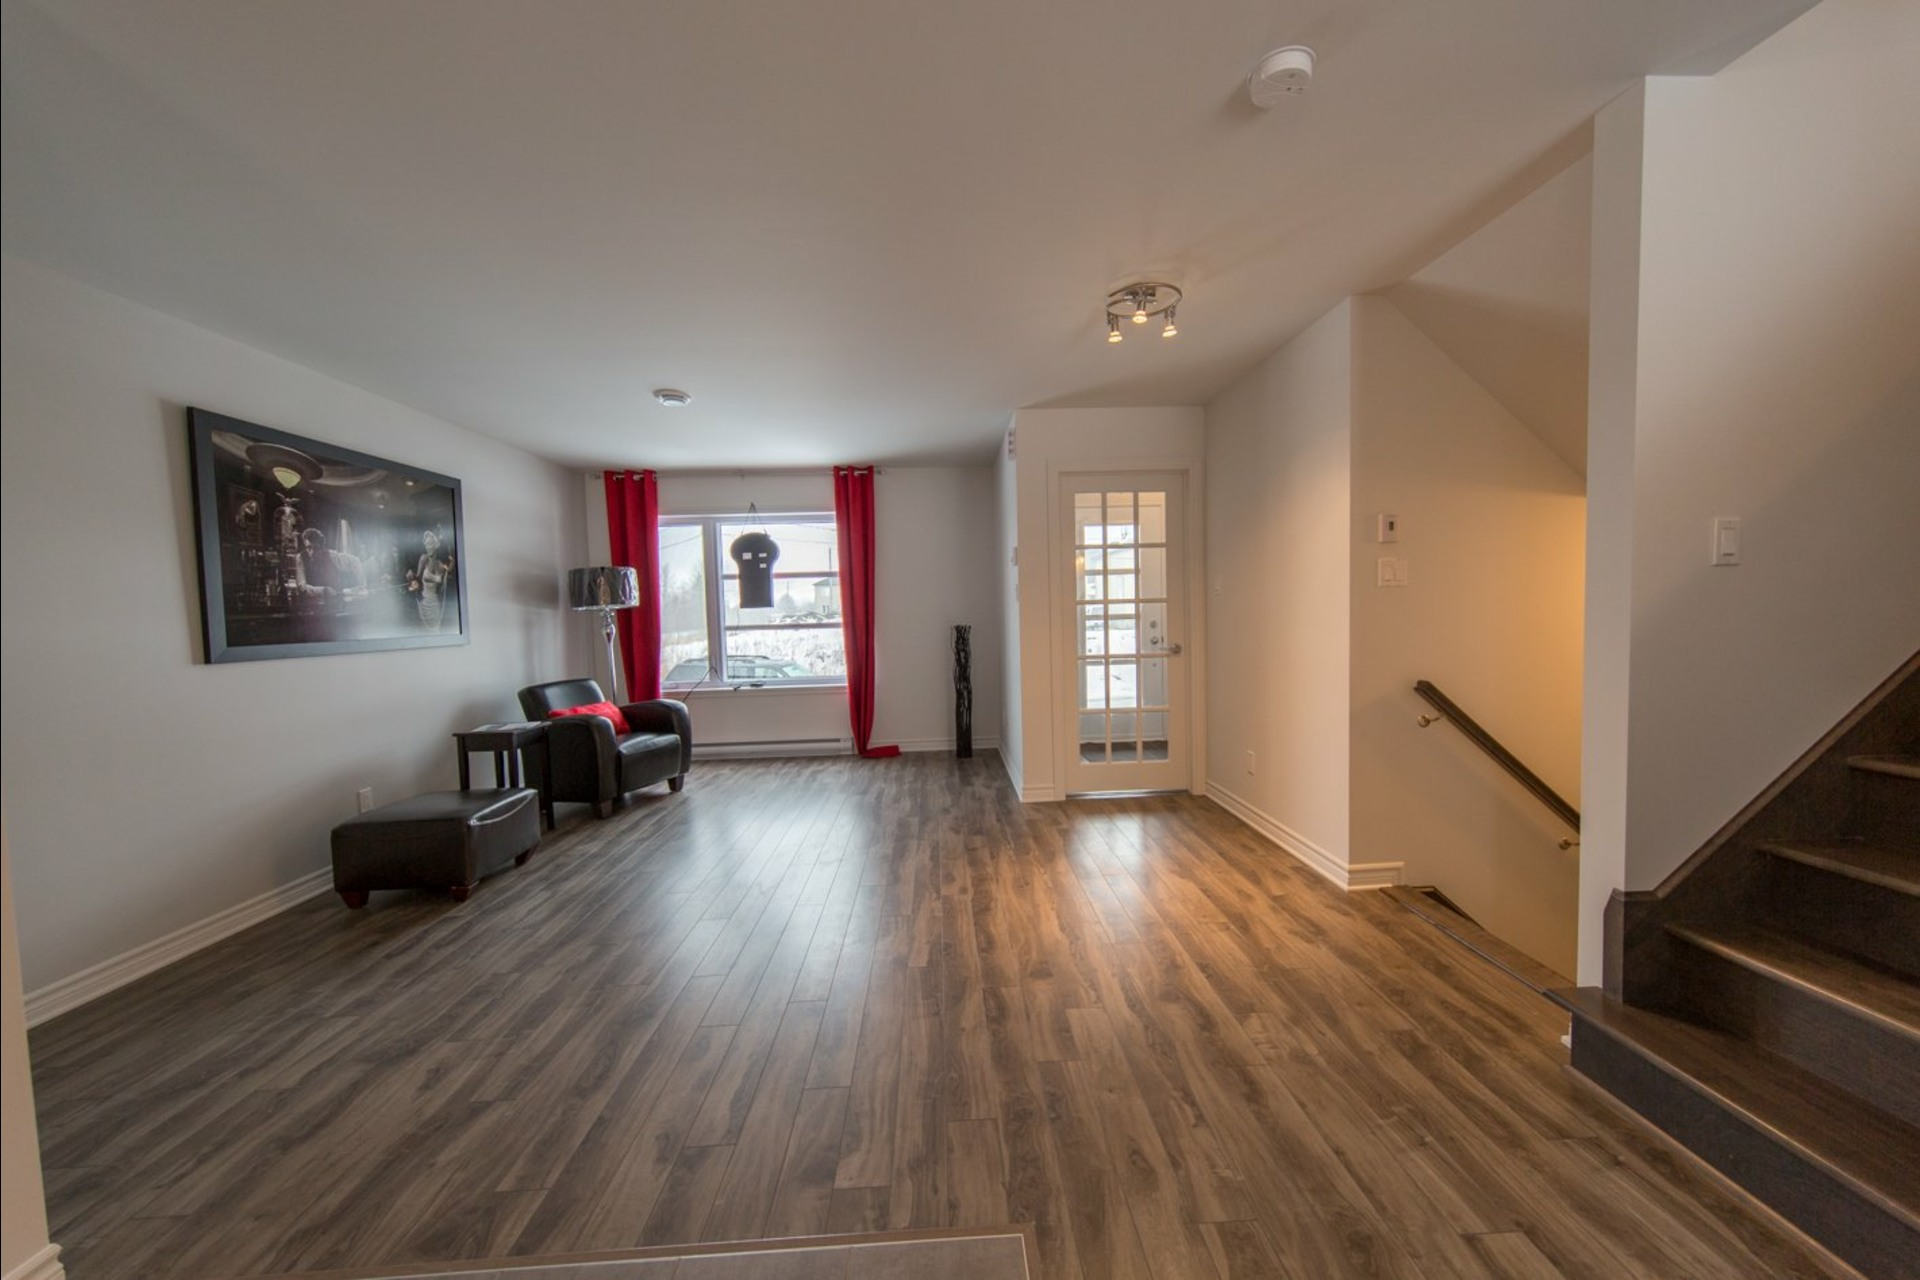 image 3 - House For sale Contrecoeur - 7 rooms